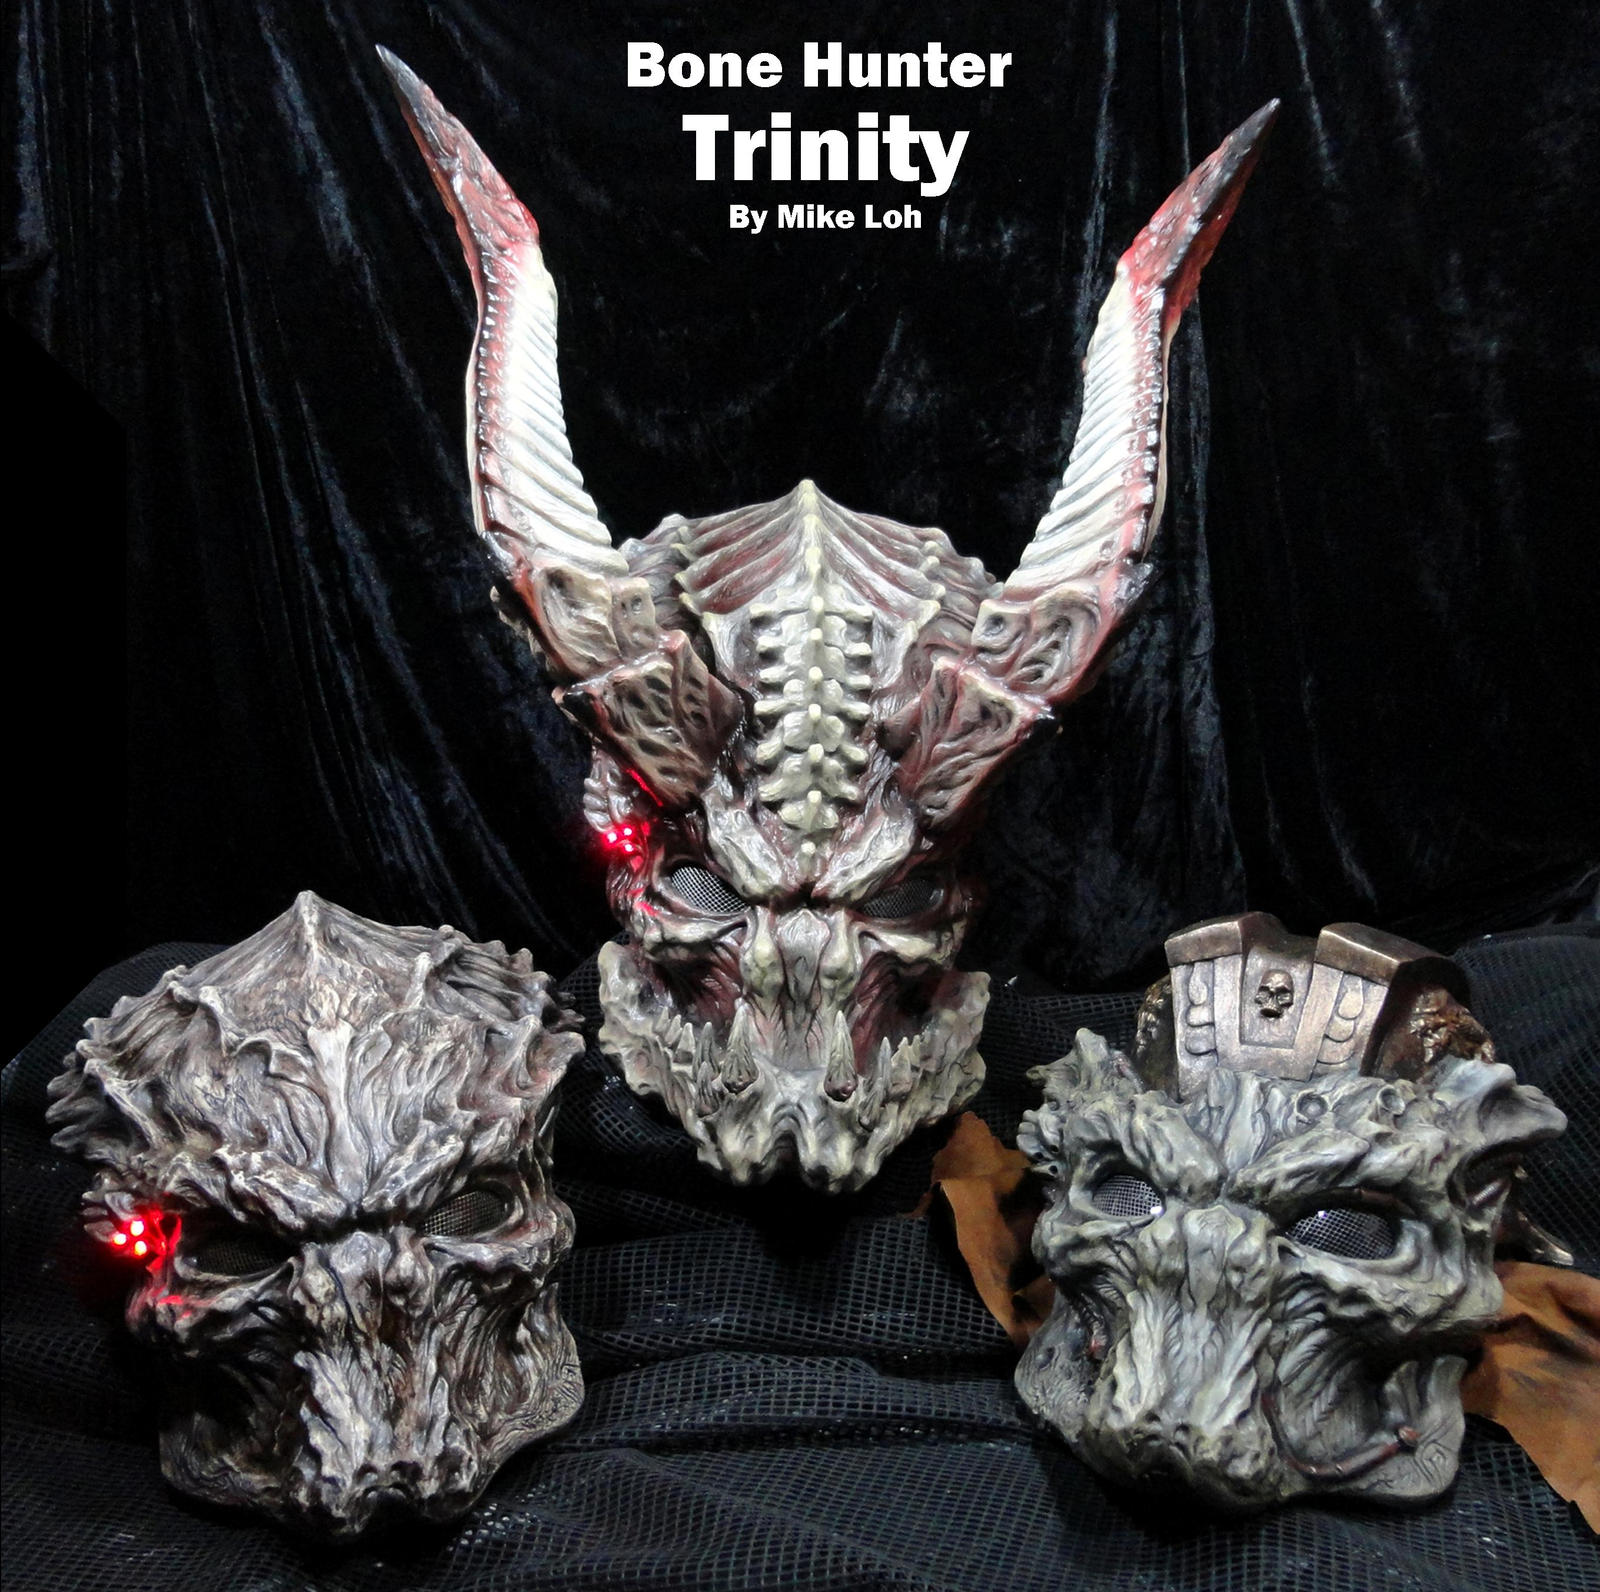 legend of the bonehunter predator helmet